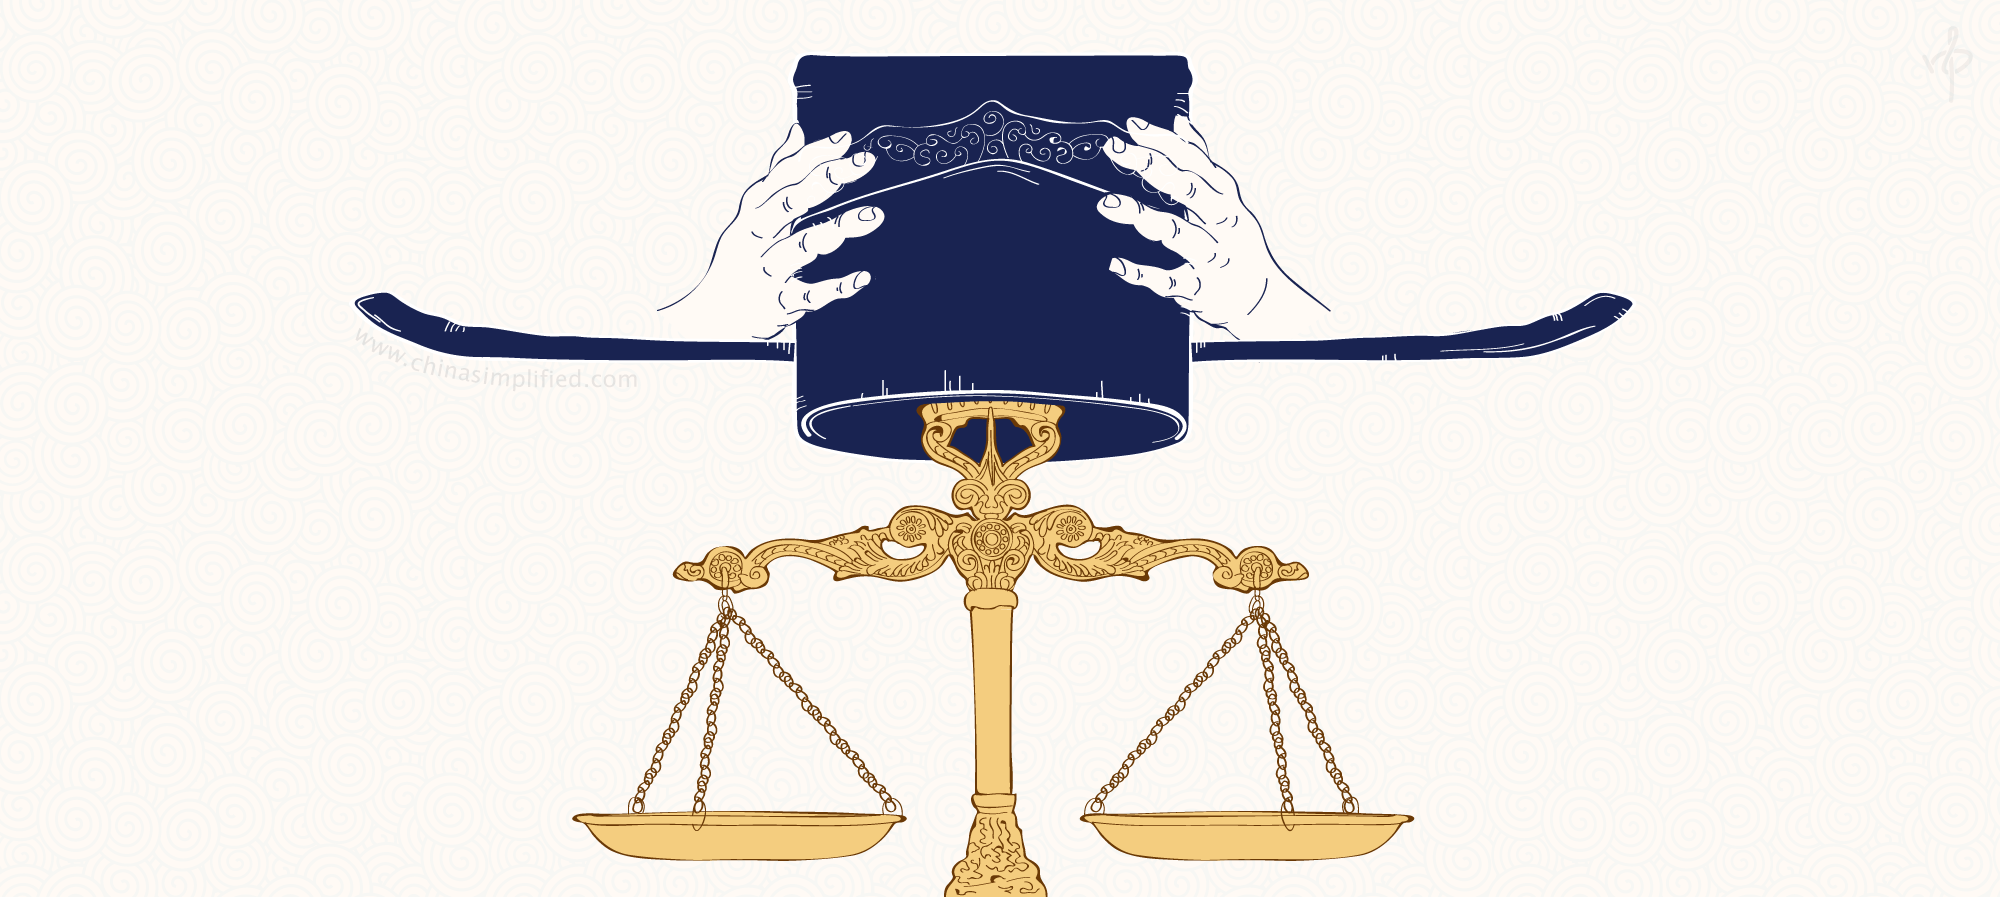 8 Misconceptions about the Chinese Legal System